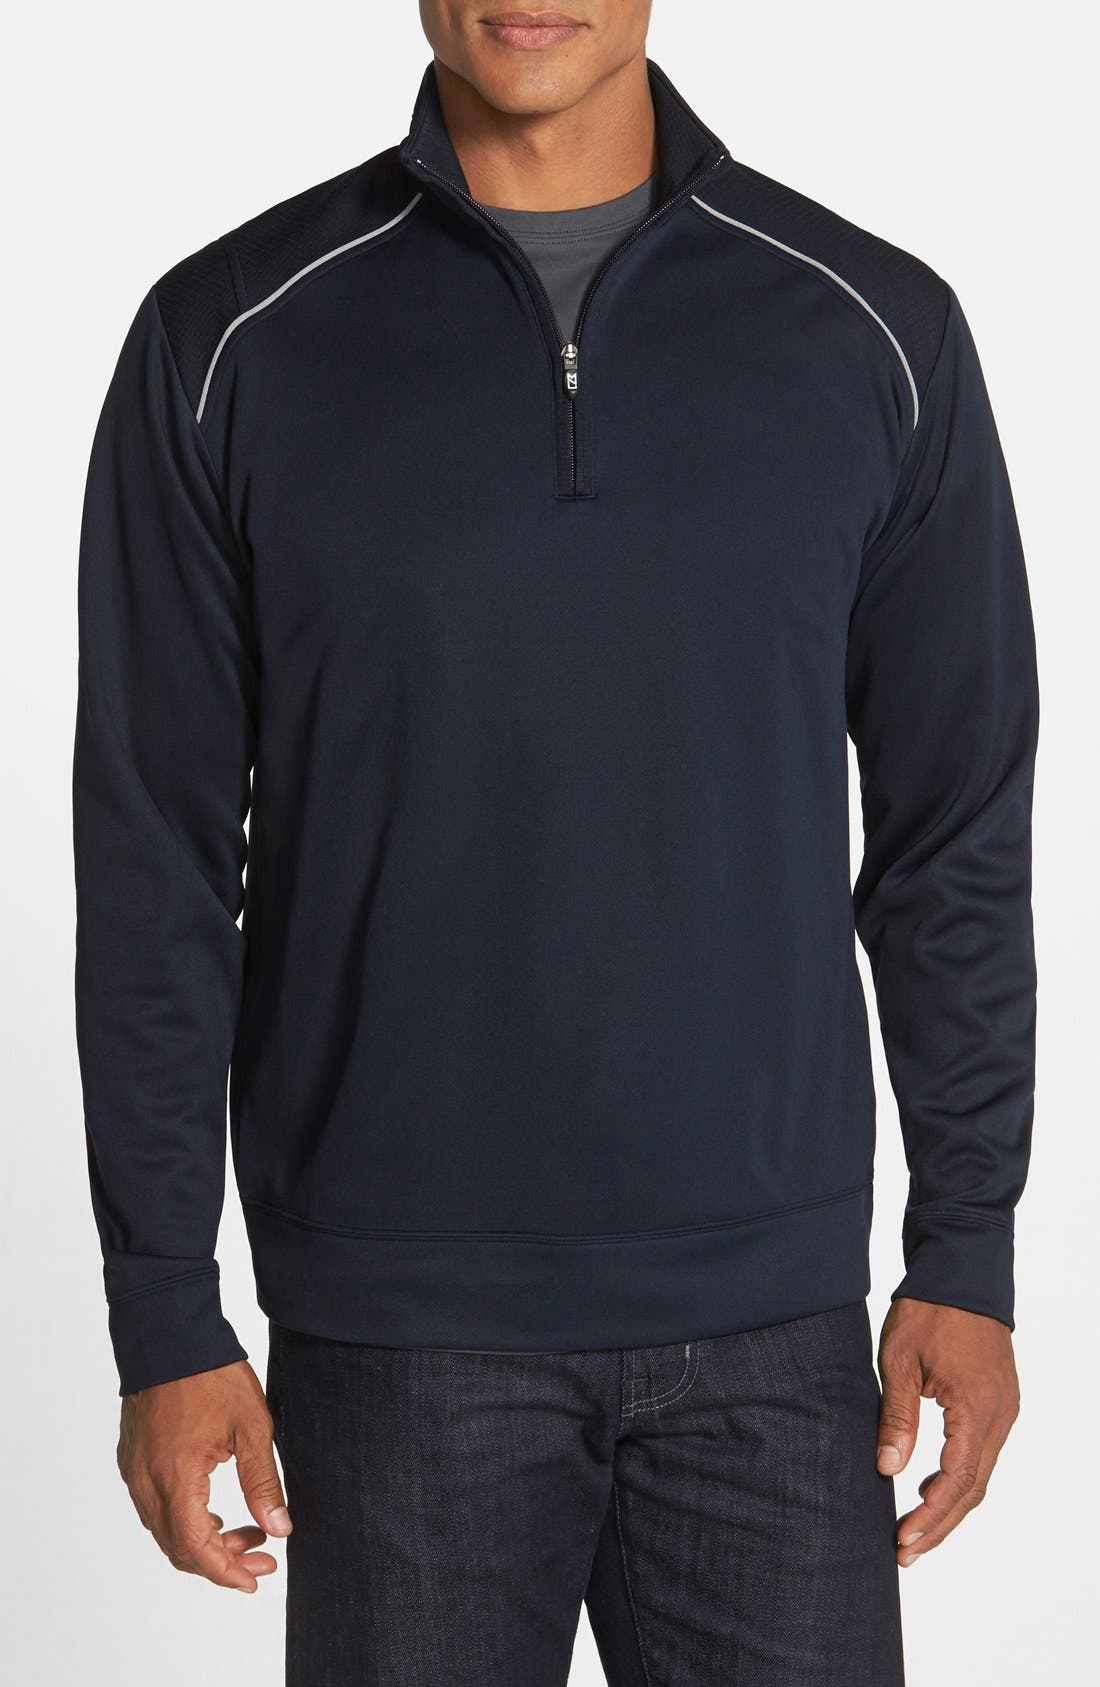 CUTTER & BUCK, Ridge WeatherTec Wind & Water Resistant Pullover, Main thumbnail 1, color, NAVY BLUE